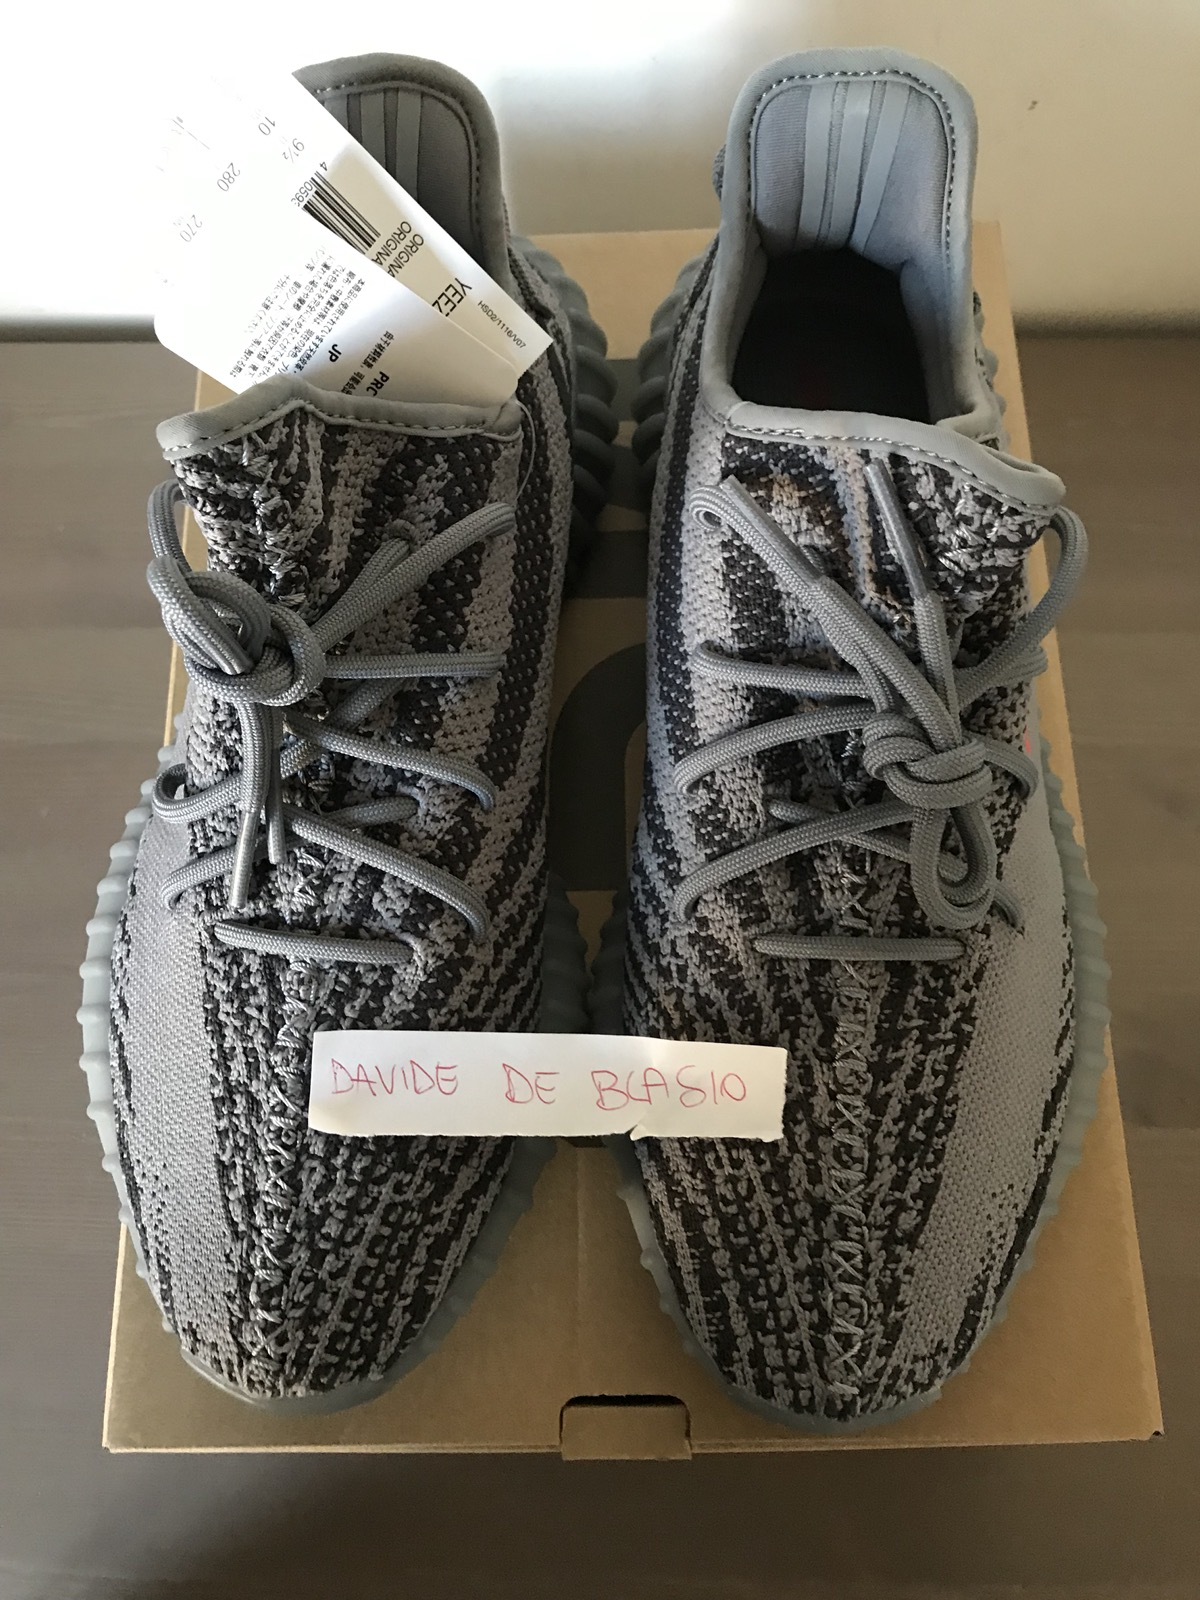 bd4a6ae16e2 Adidas Adidas Yeezy Boost 350 V2 Beluga 2.0 New Ds Steal